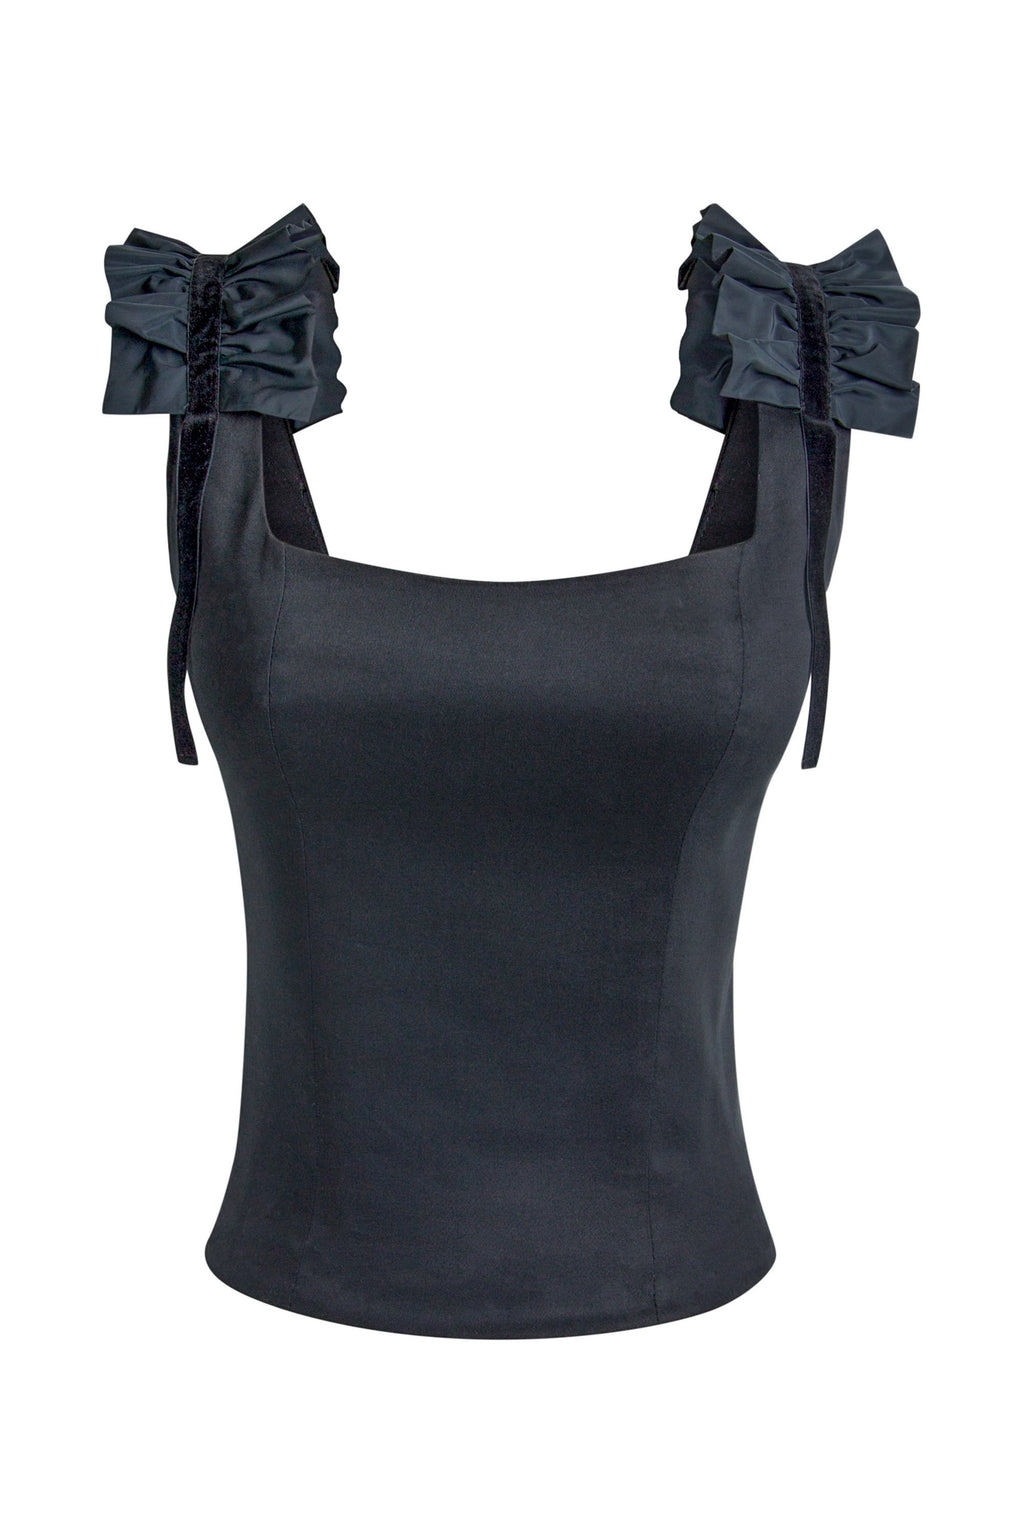 Ruffles Please Square Neckline Structured Top - Black - Tia Dorraine London